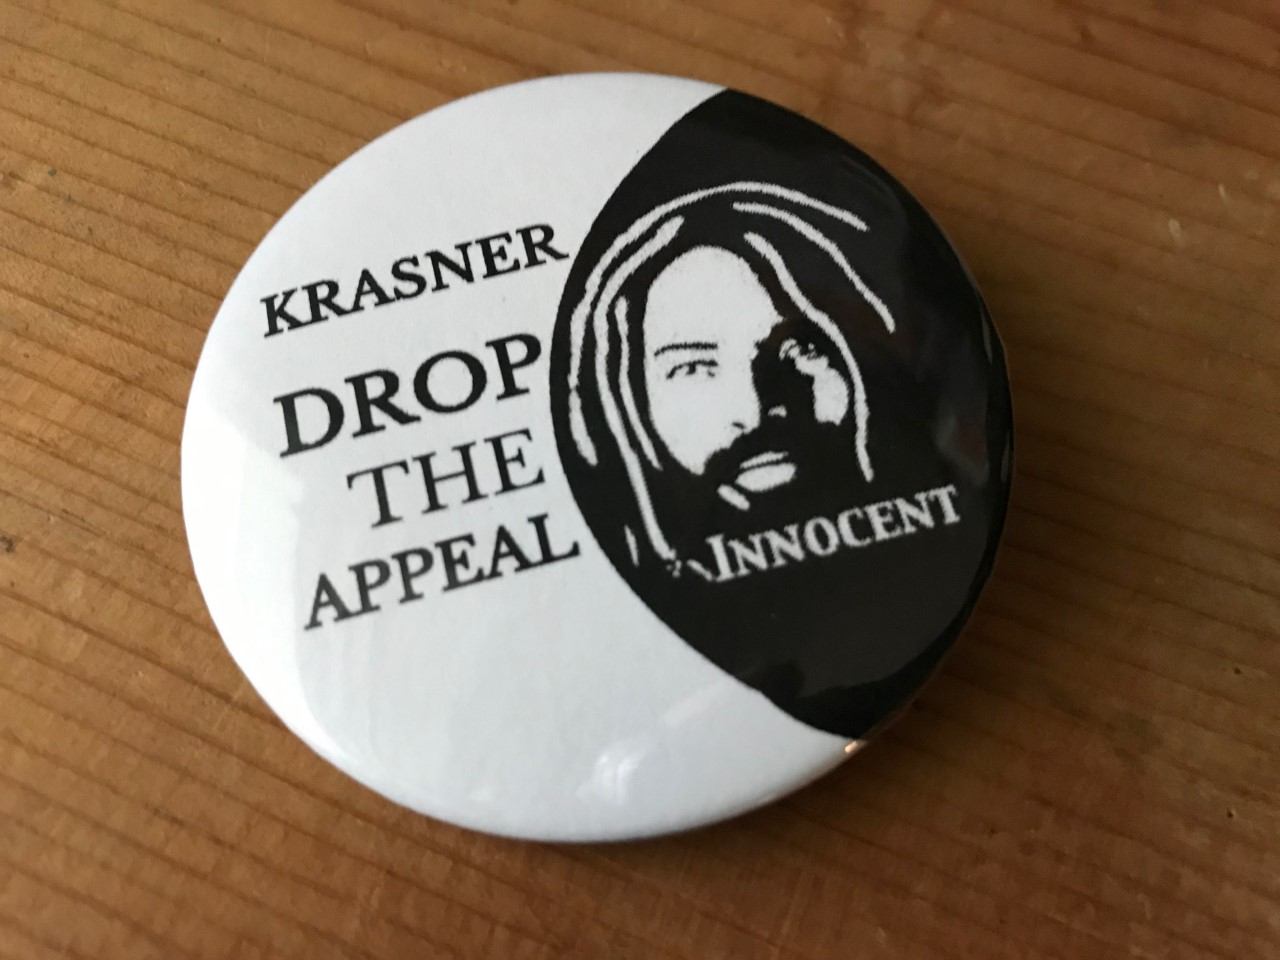 These buttons can be ordered (minimum order of 25) by emailing mobilization4mumia@gmail.com. Button graphic credit: Cindy Miller